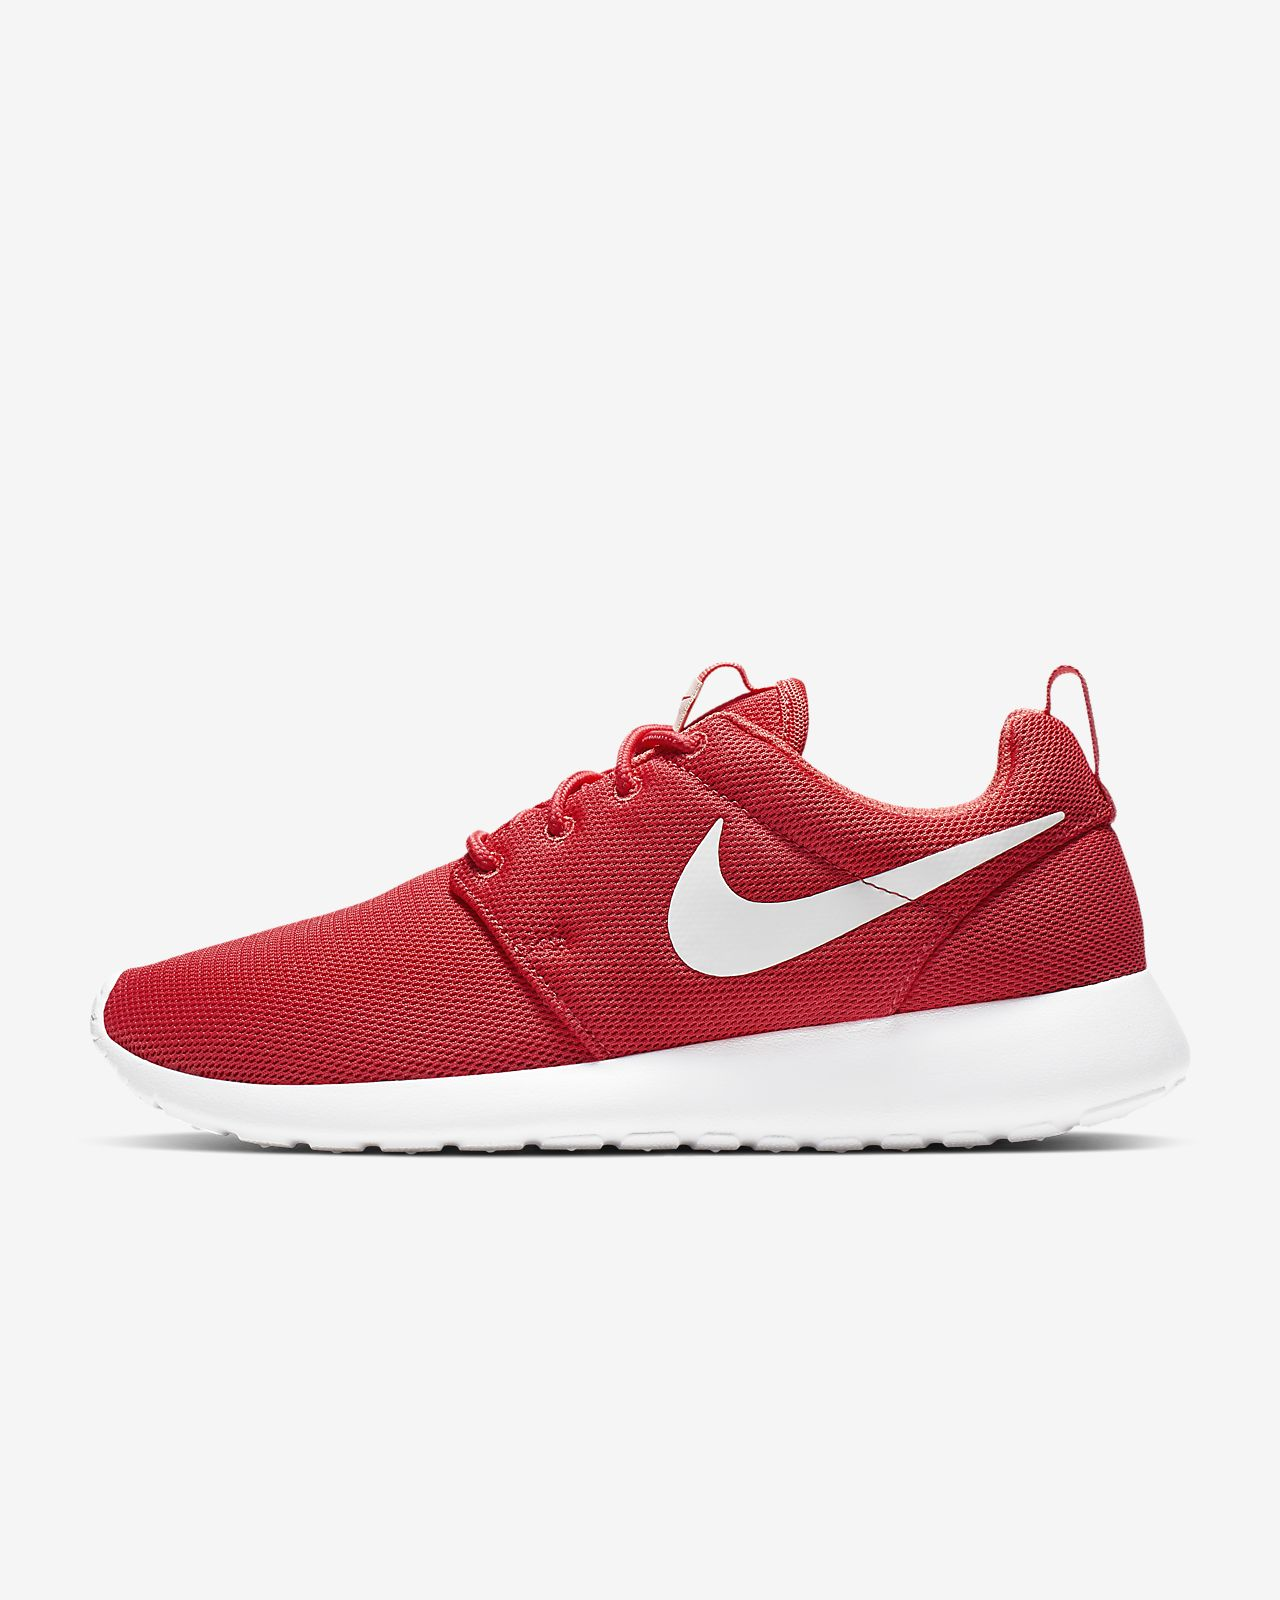 pretty nice 3d405 eb2b4 Nike Roshe One Women s Shoe. Nike.com